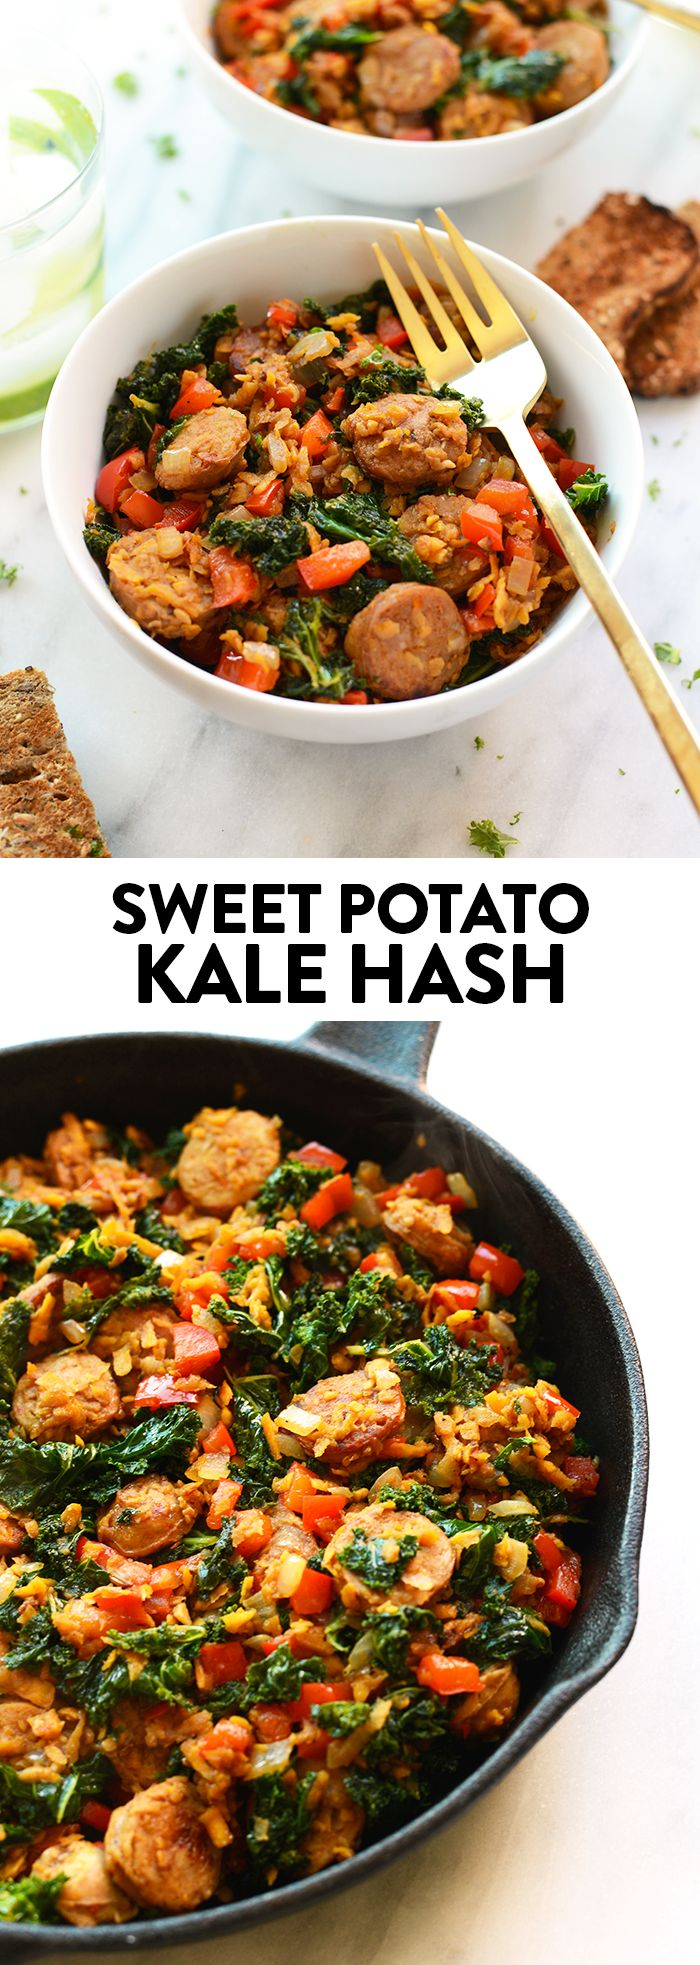 For breakfast, lunch, or dinner...this sweet potato kale hash is packed with tons of veggies and protein for a satisfying meal!